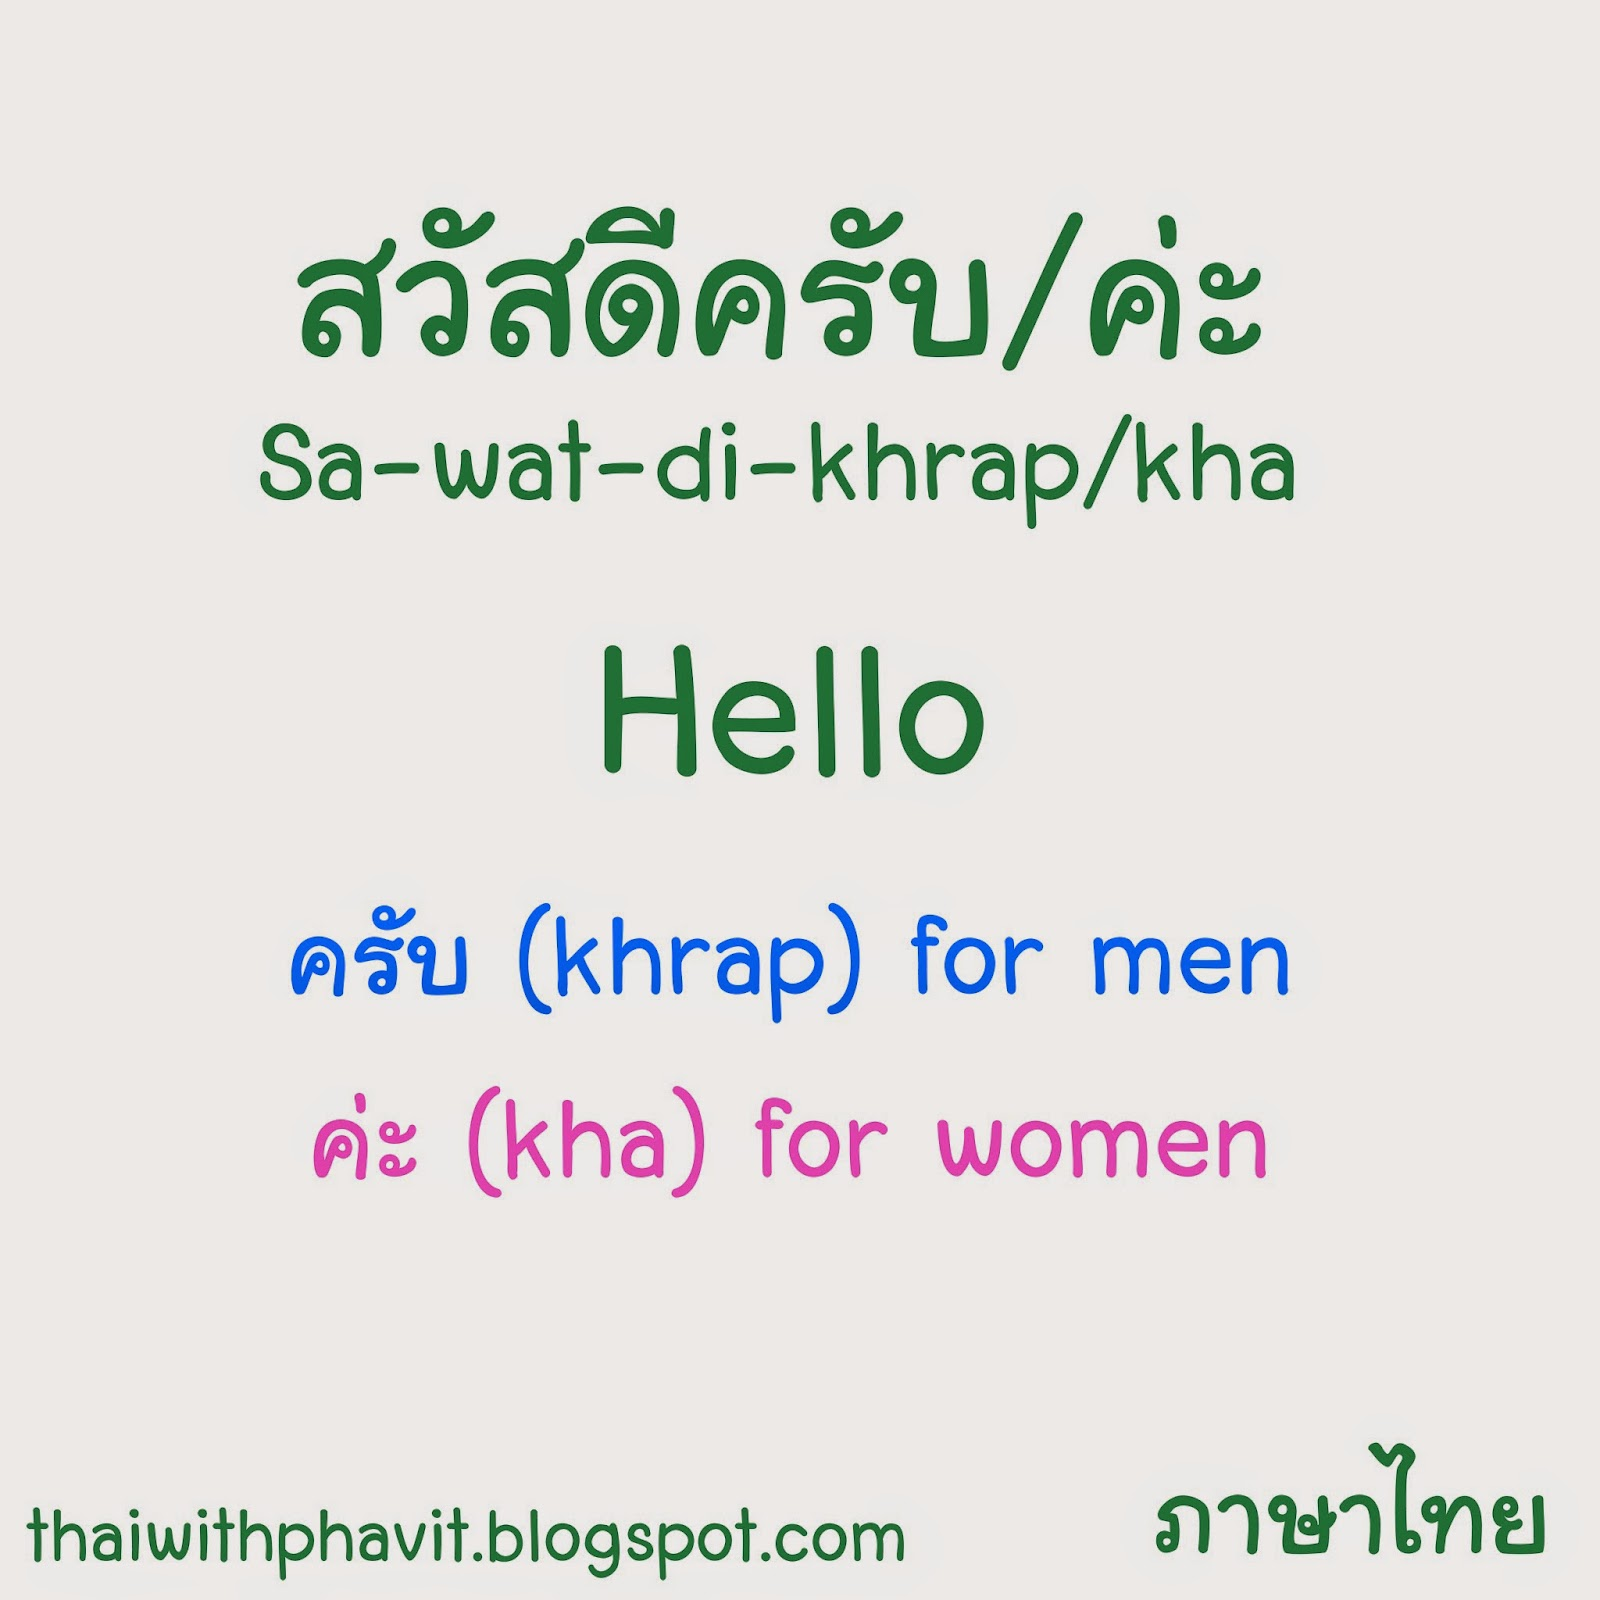 Greeting and introduce yourself sawatdi khrap and sa wat di kha are basic greeting in thai m4hsunfo Gallery